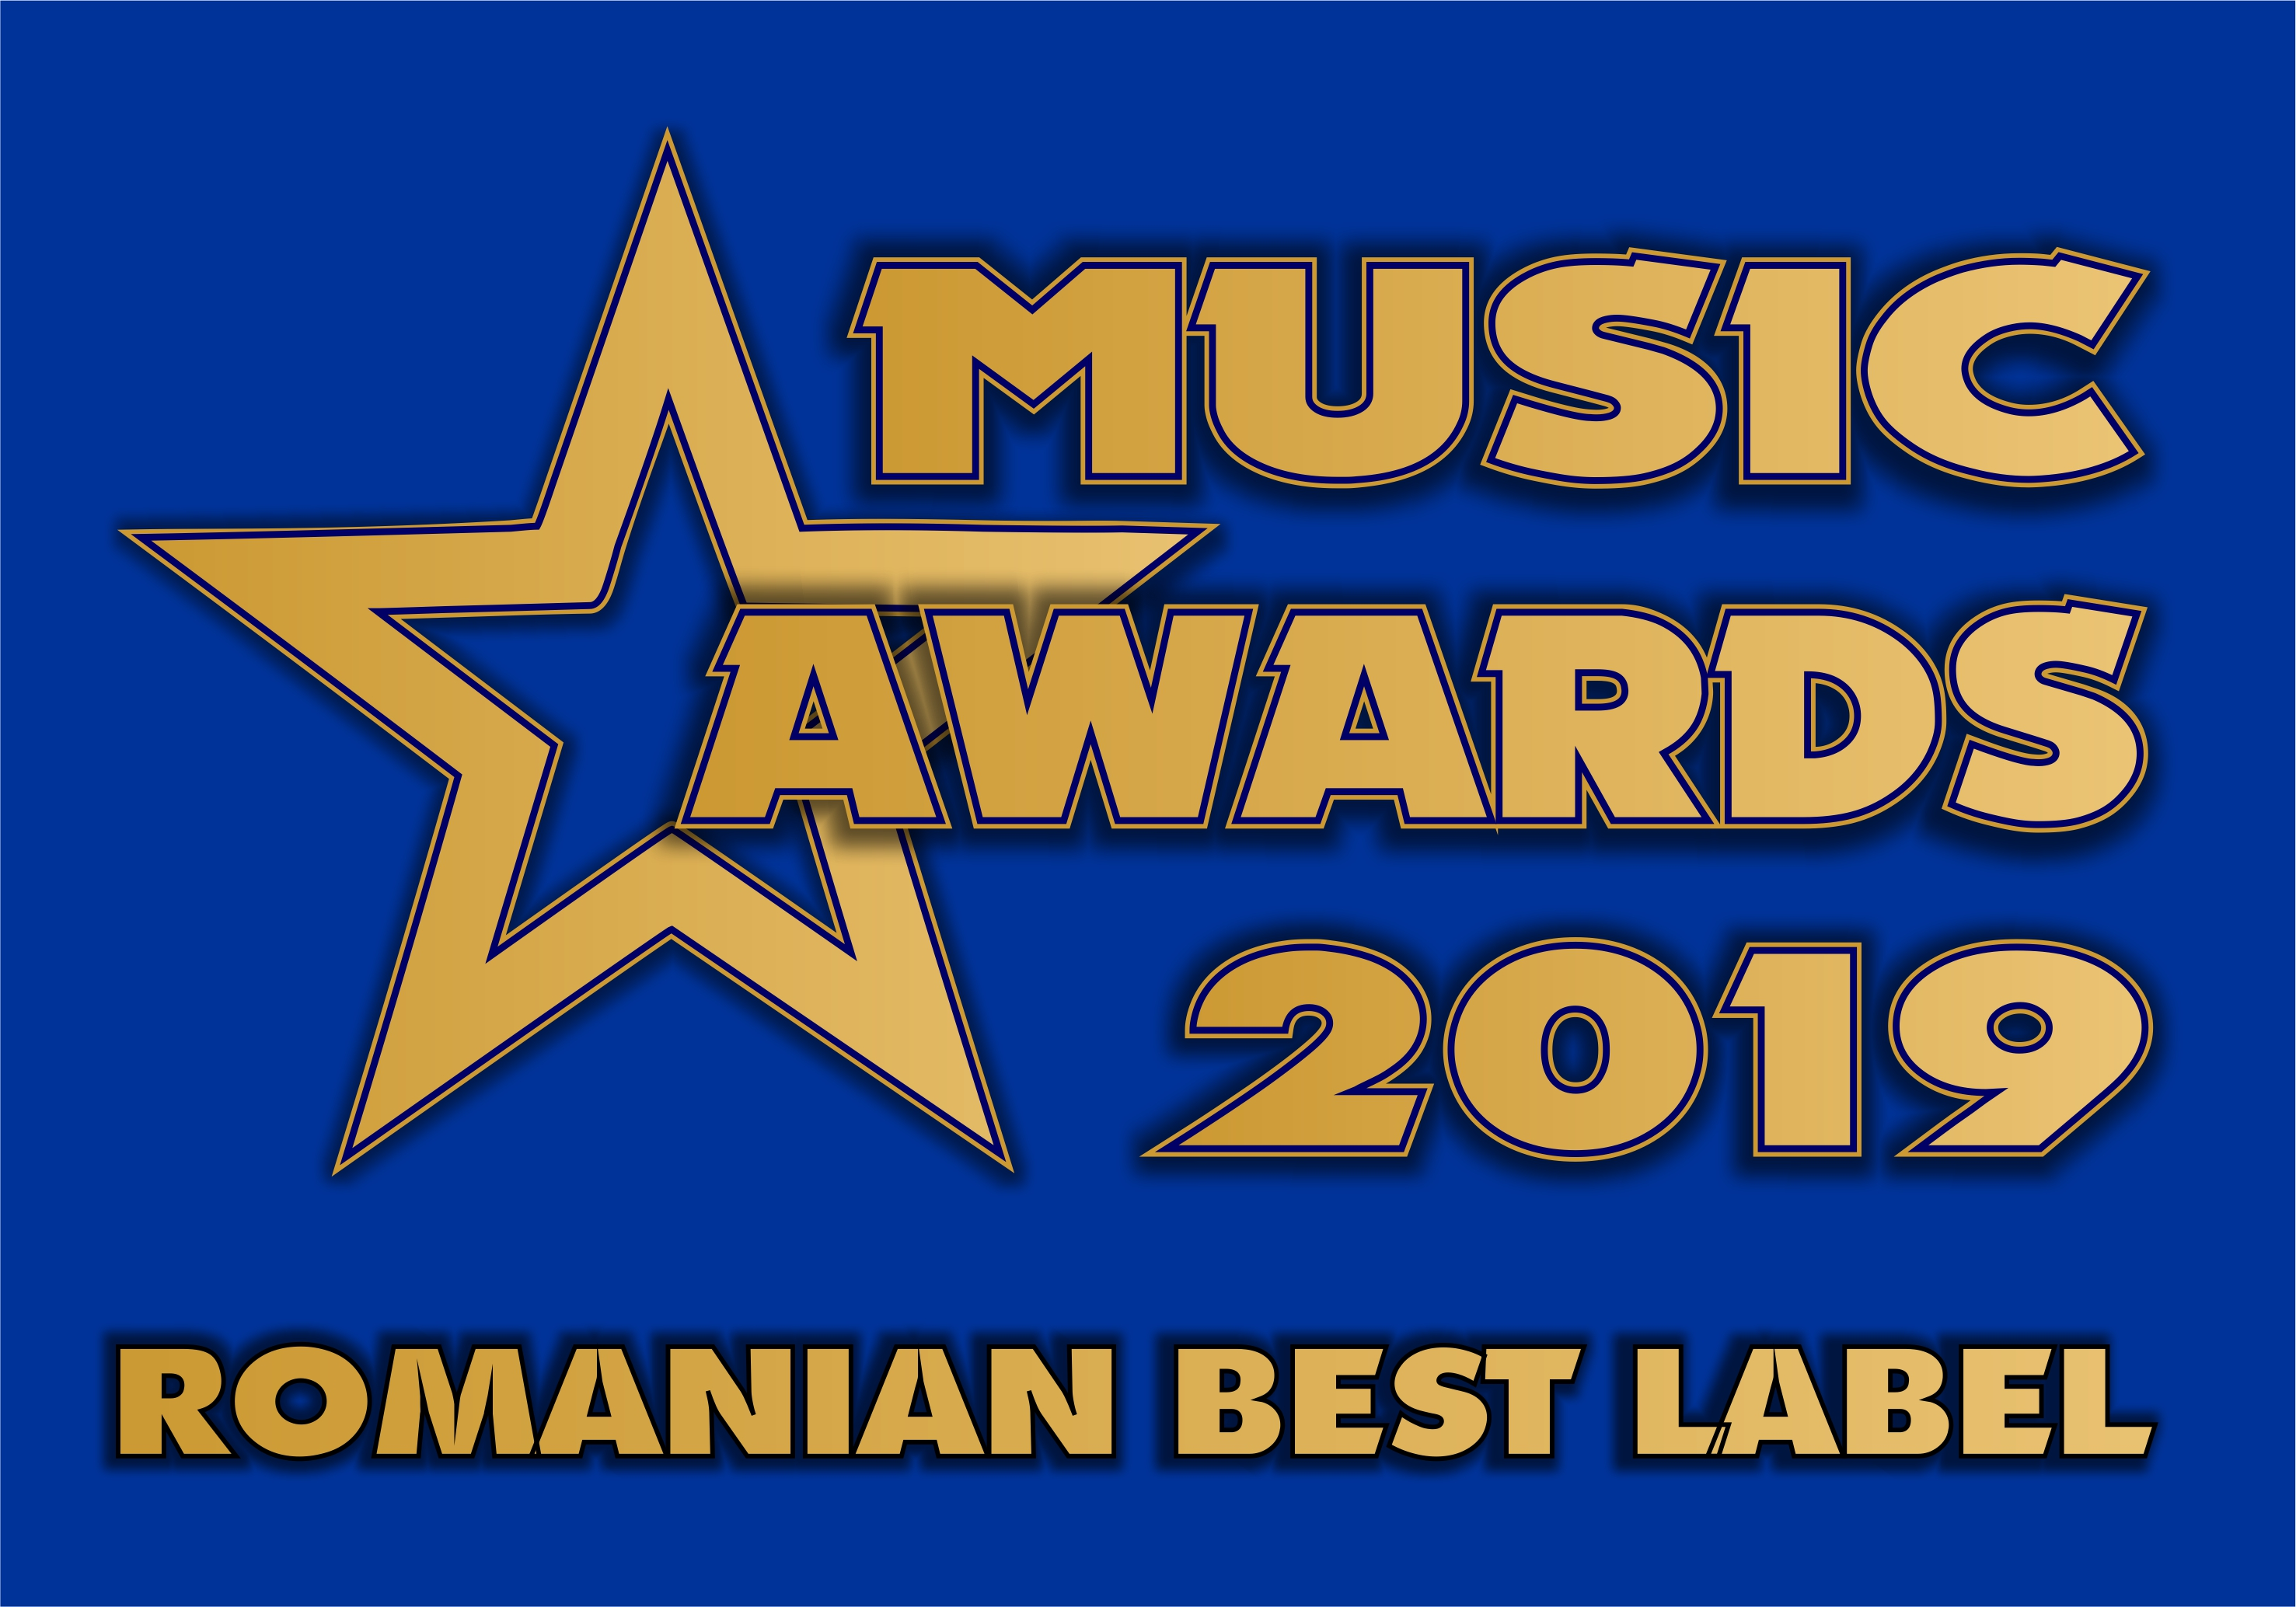 romanian-best-label.jpg